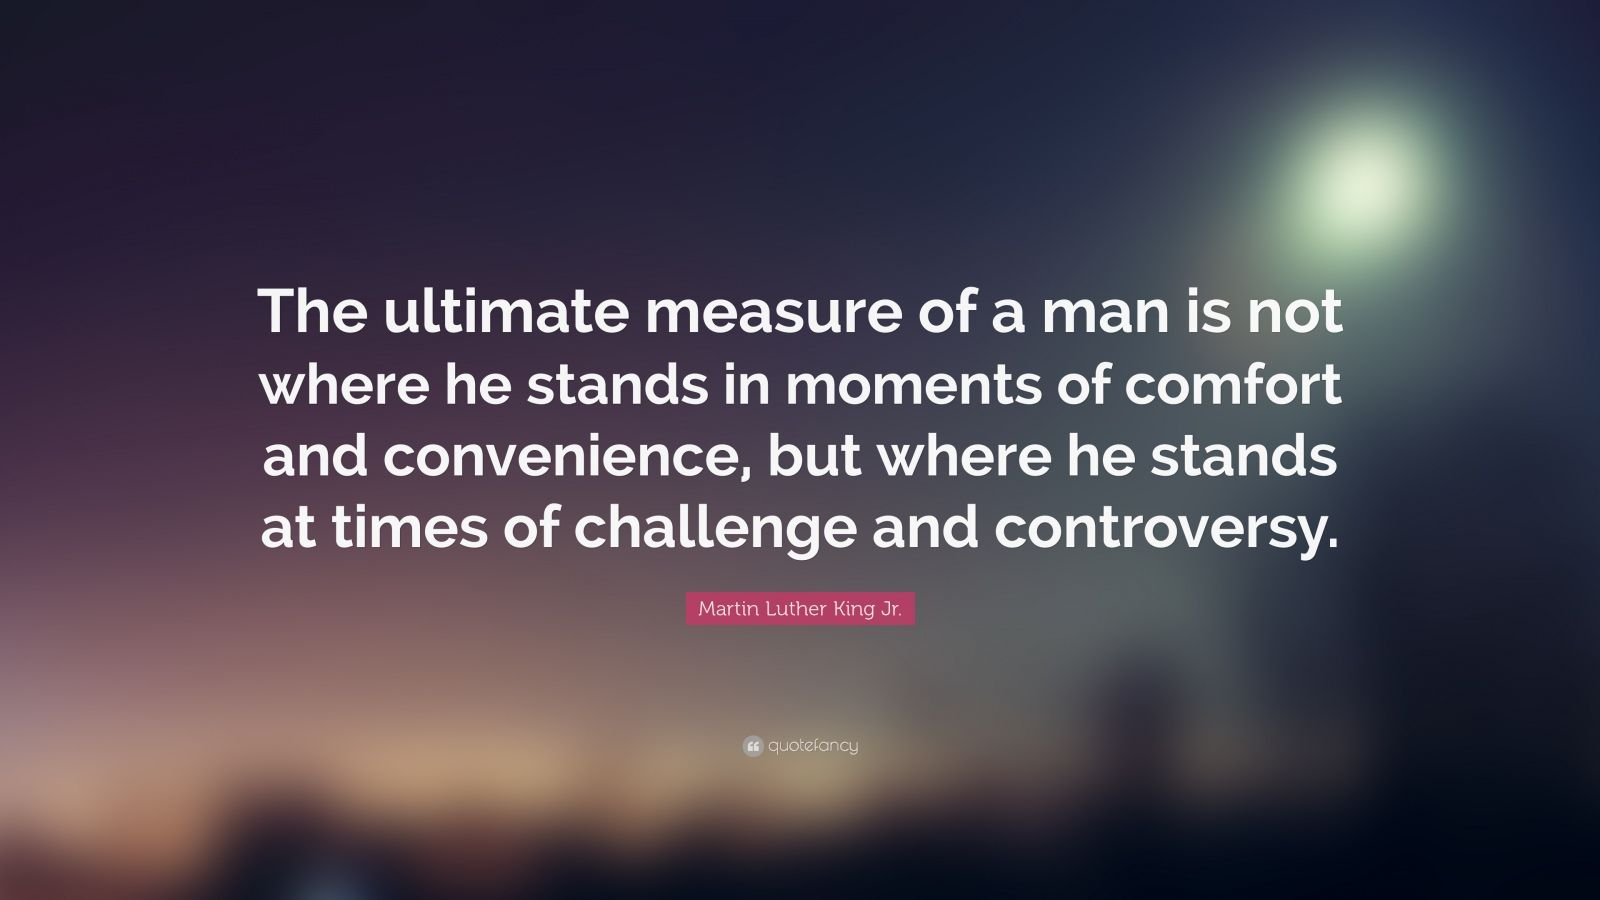 Ultimate Martin Luther King Jr. Quotes Measure